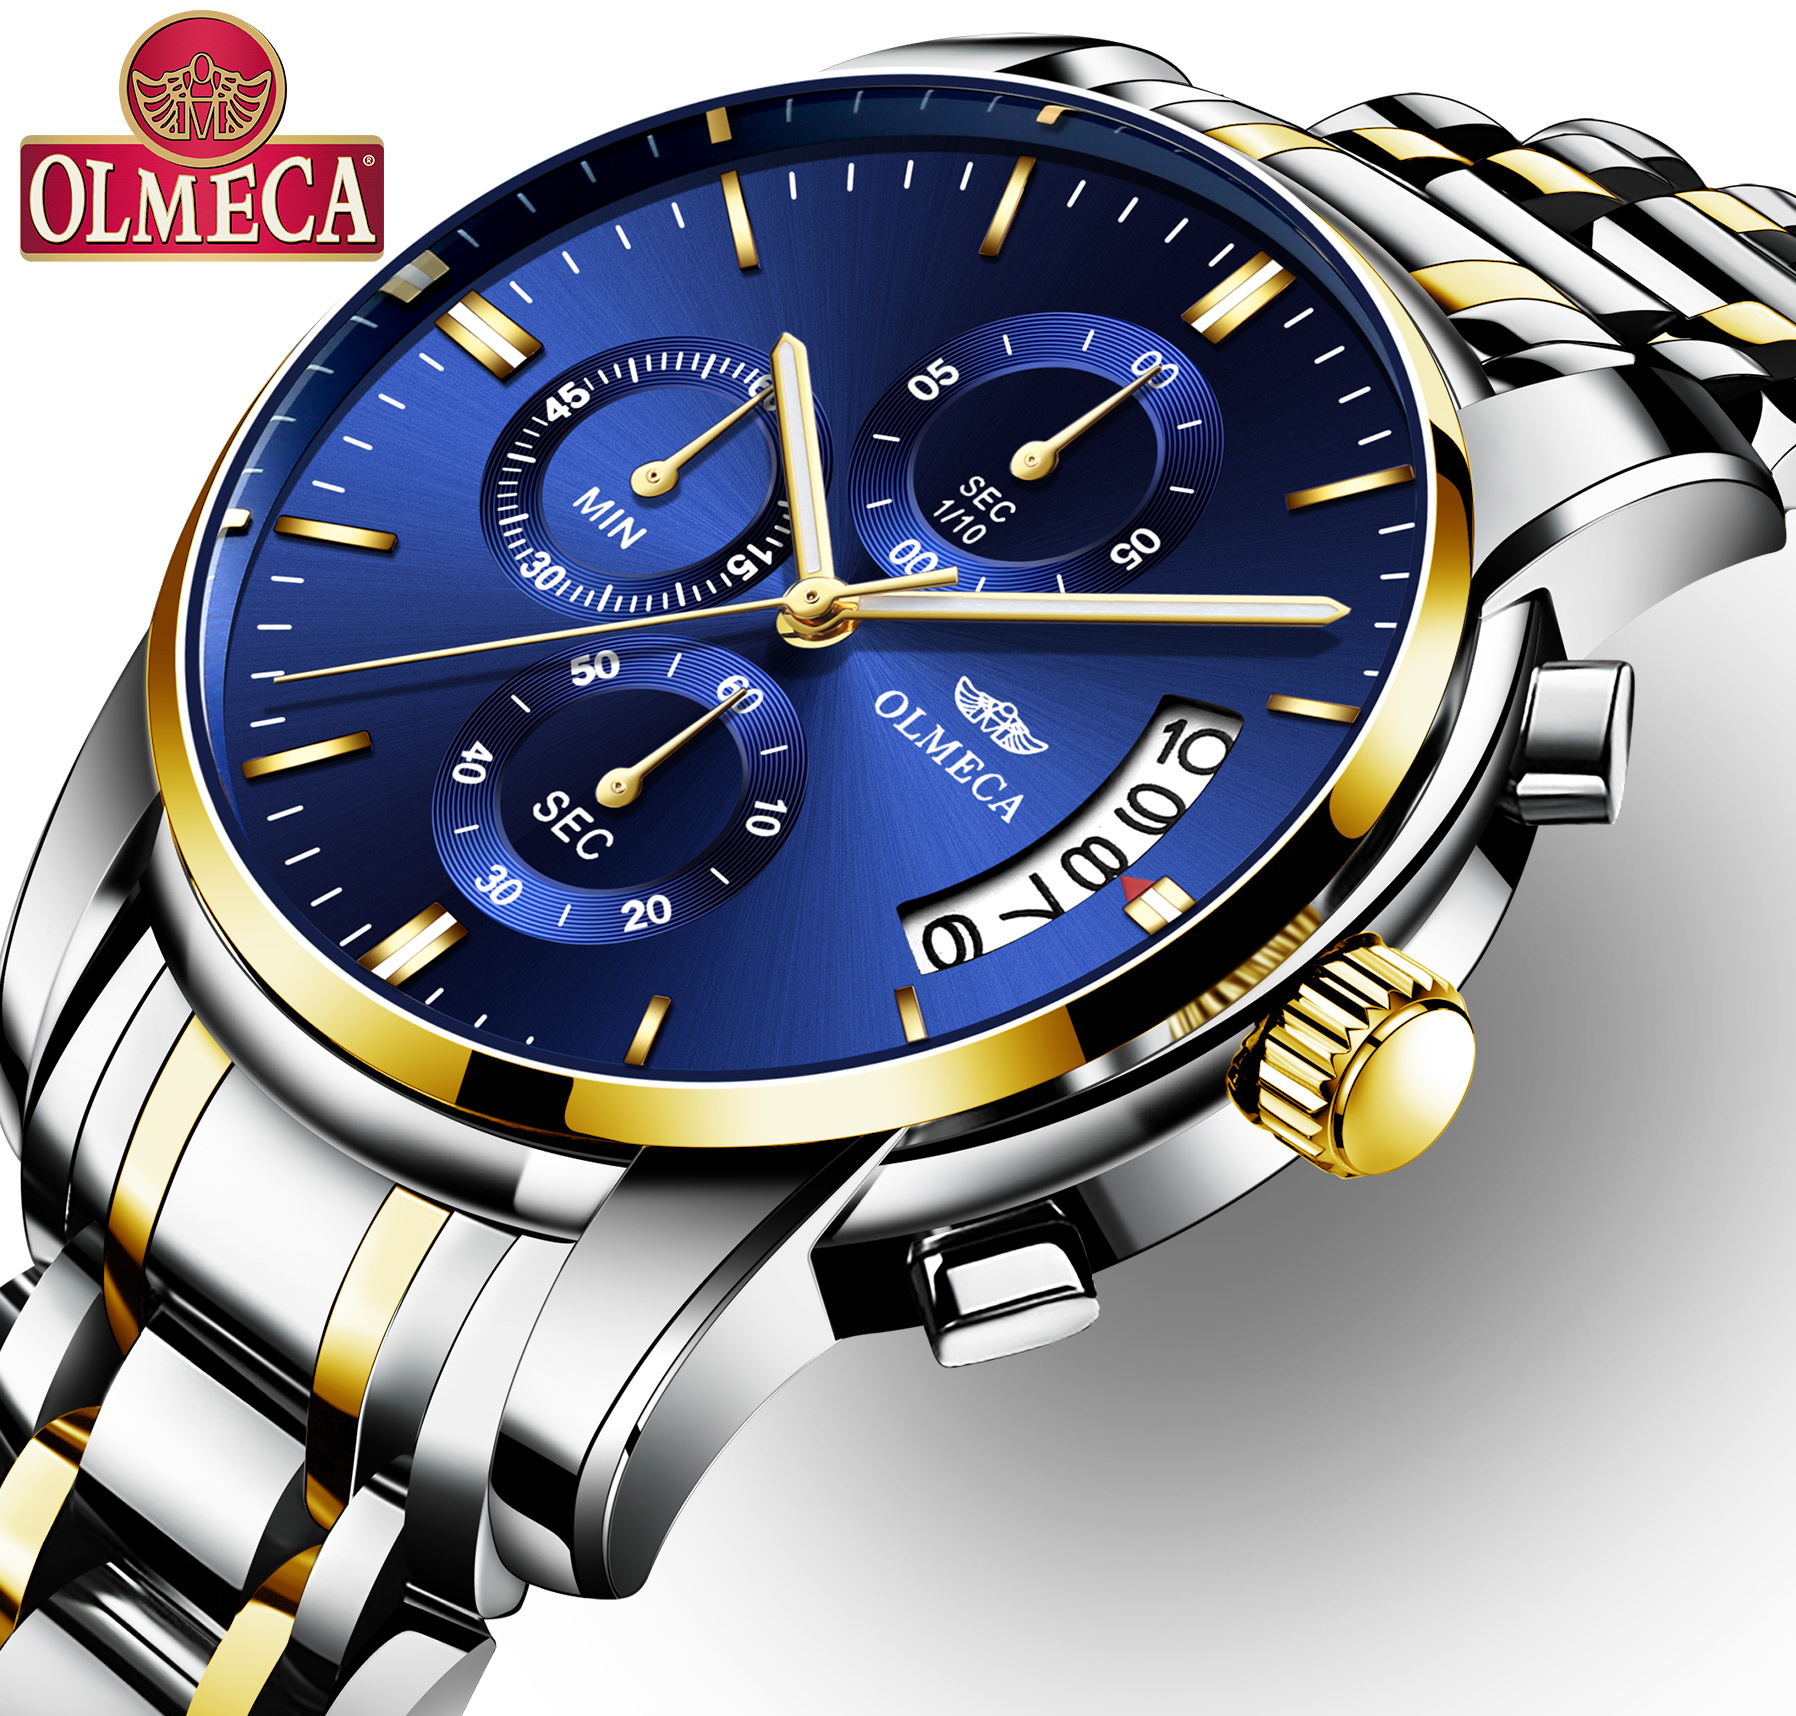 OLMECA Relogio Masculino Men Watch Luxury Watches 3ATM Waterproof Clock Chronograph Wristwatch Leather Band watches for